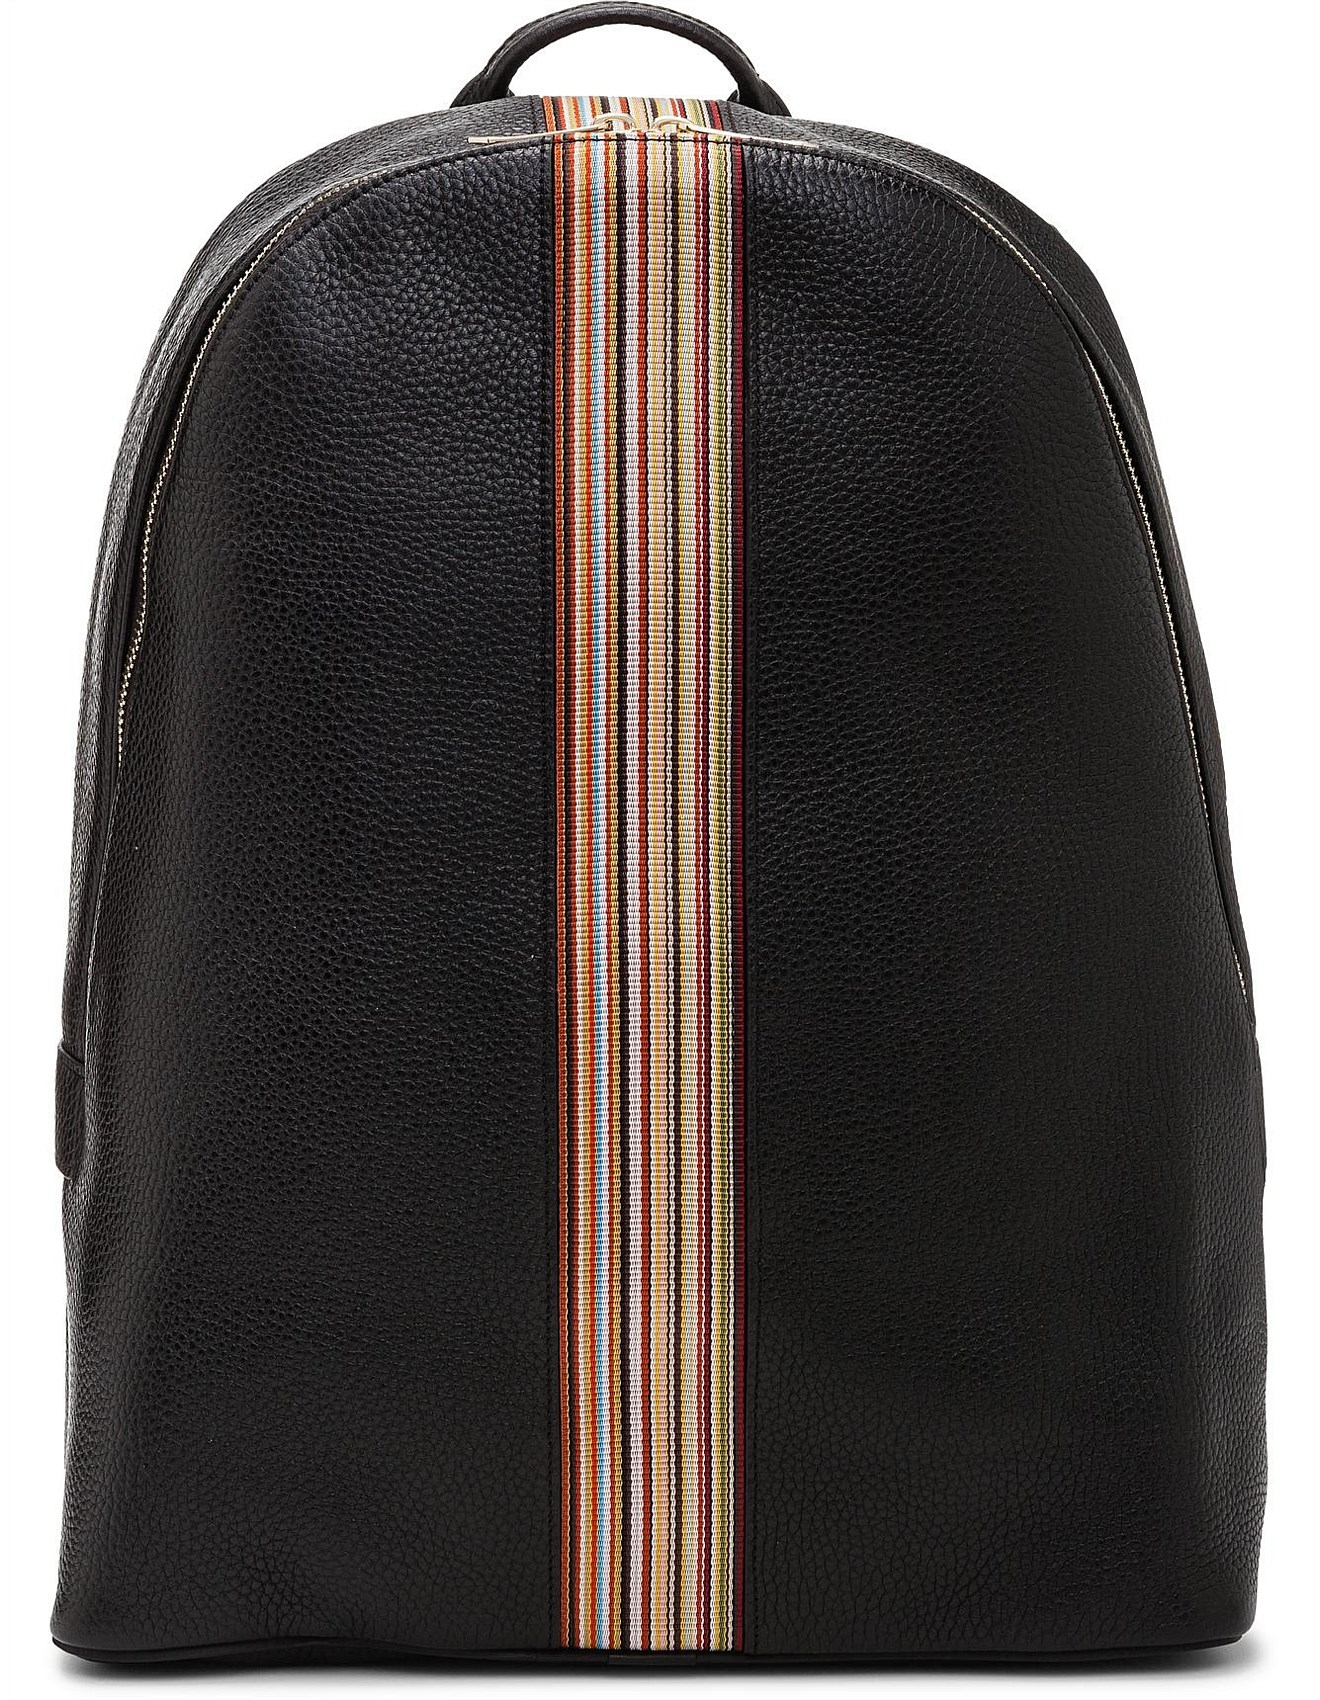 e7d6a0c559 MULTISTRIPE GROUP LEATHER BACKPACK